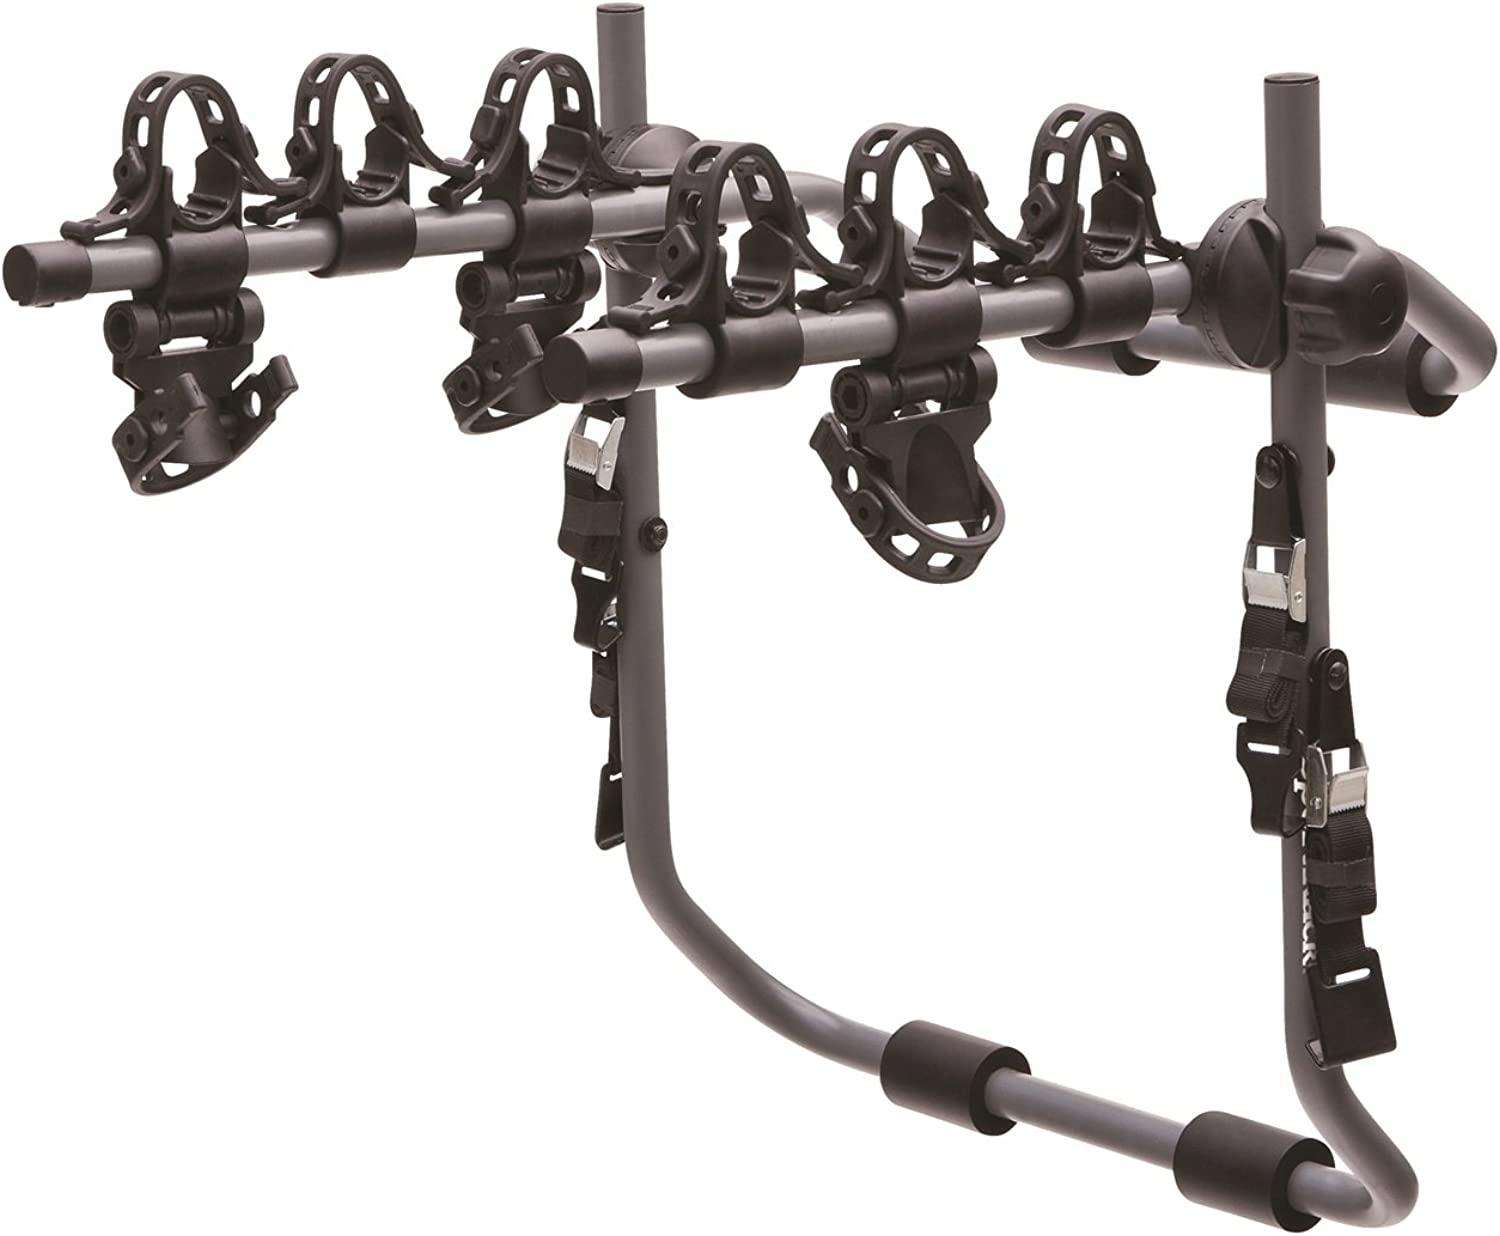 SportRack 3Bike AntiSway Trunk Mount Bike Rack